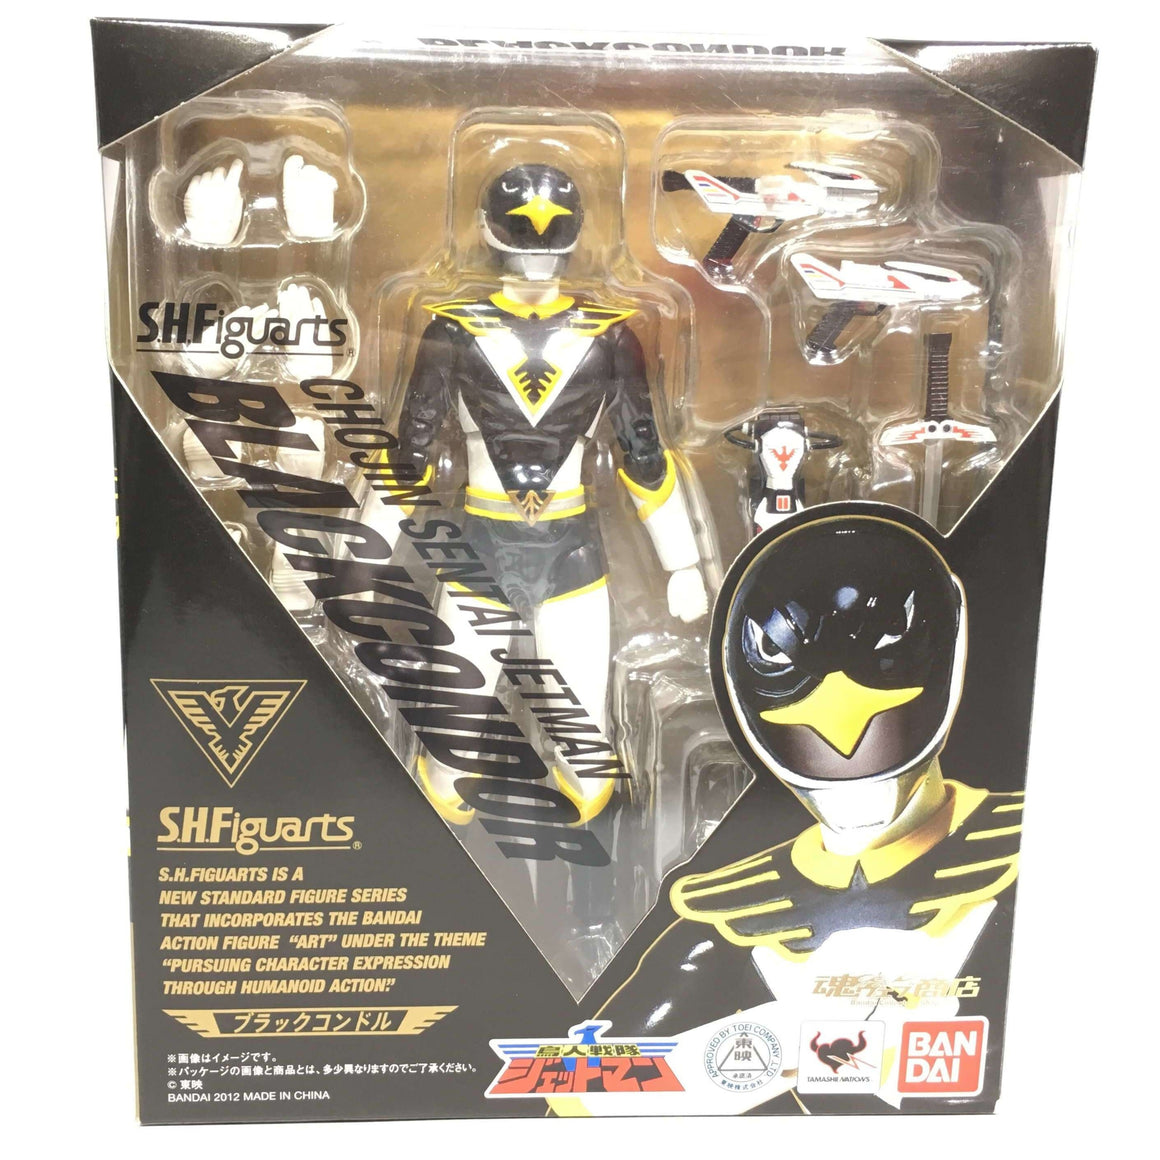 CSTOYS INTERNATIONAL:[BOXED] S.H.Figuarts Black Condor